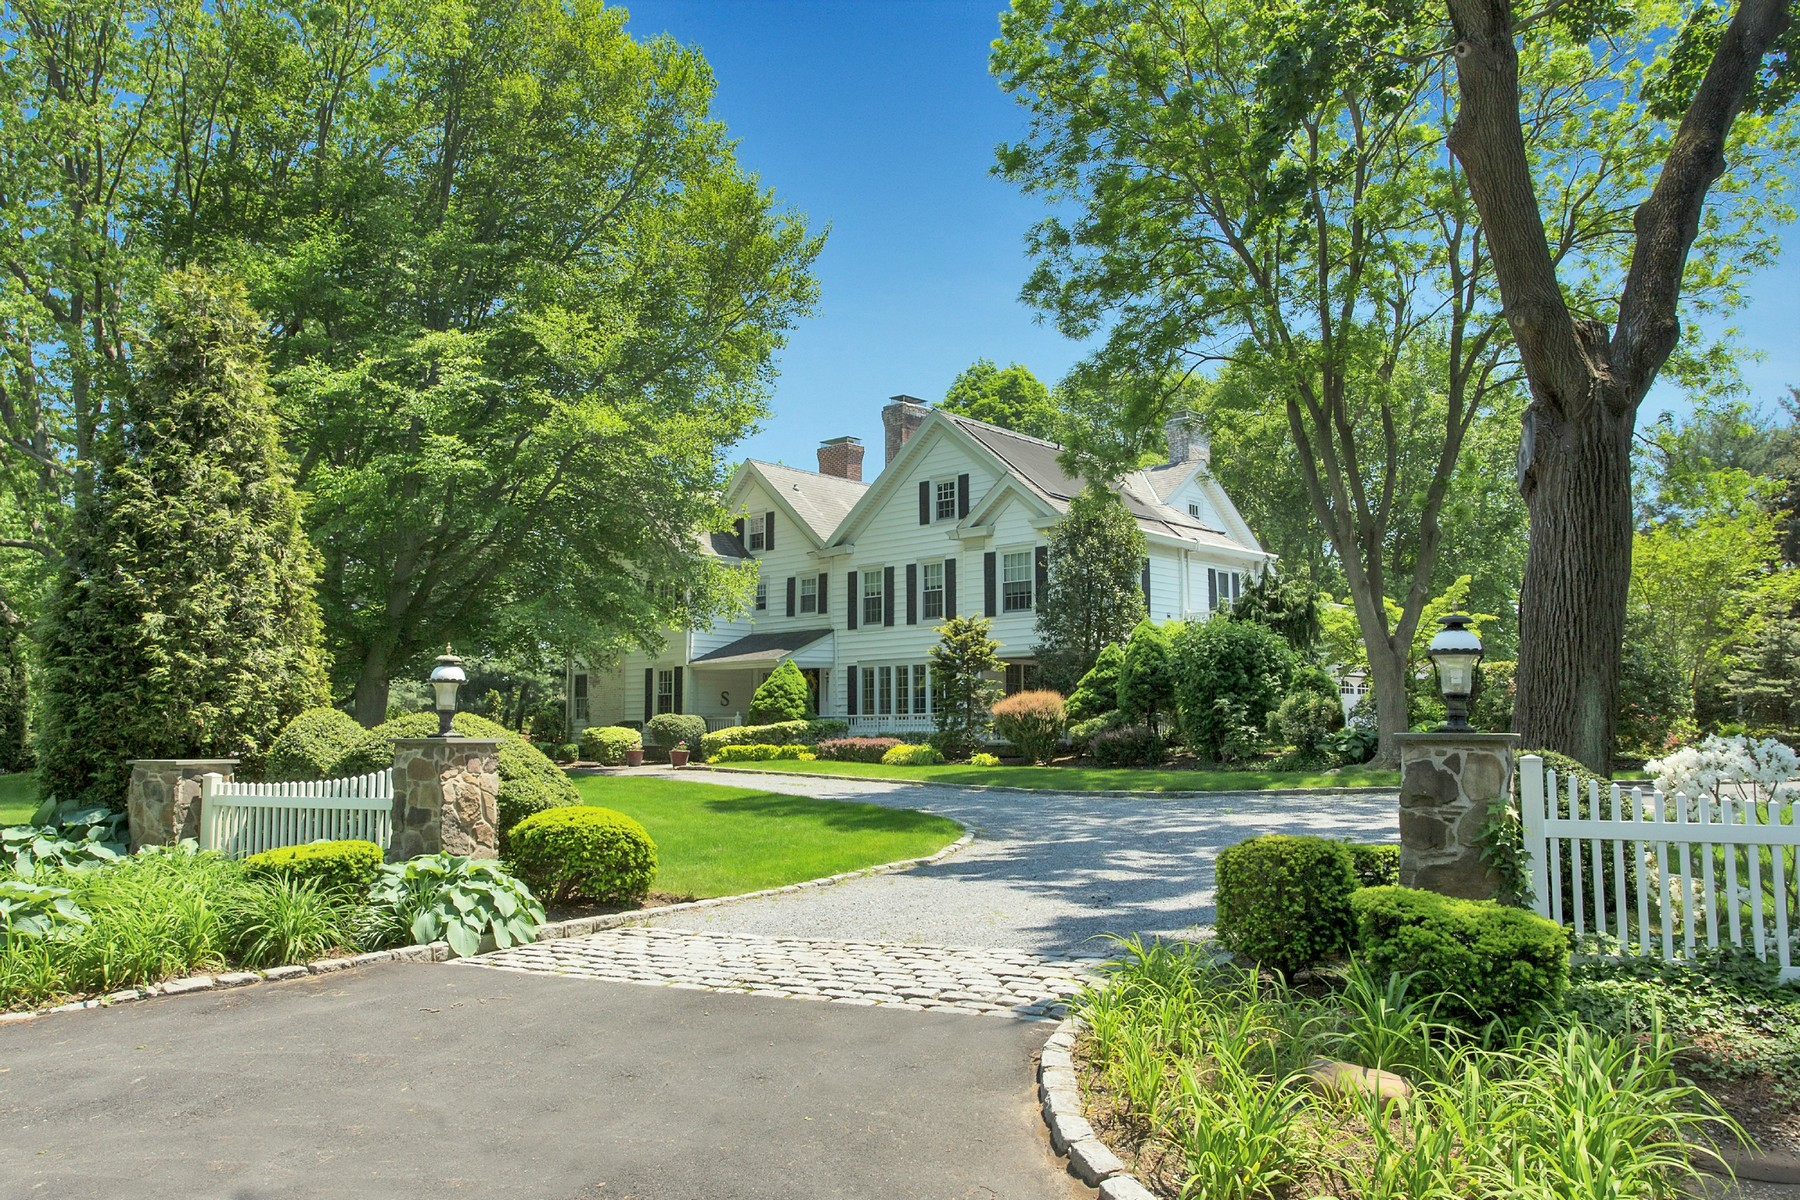 Single Family Home for Sale at Colonial 4 Pinewood Rd Old Westbury, New York, 11568 United States